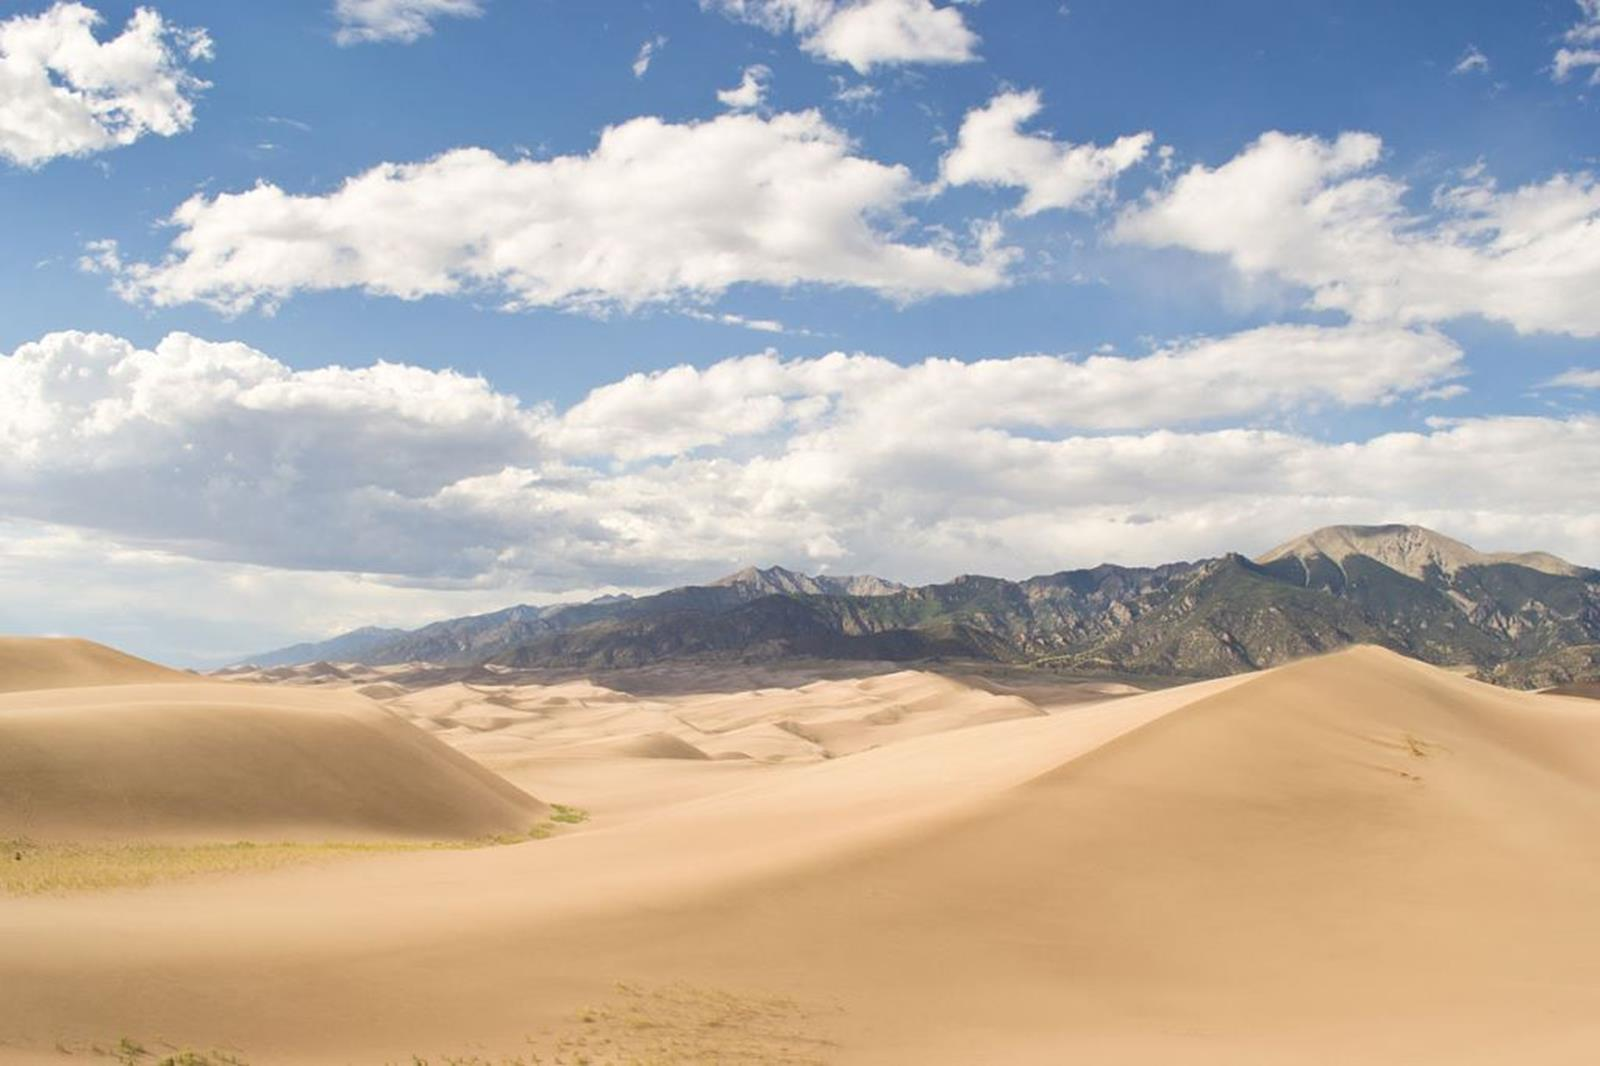 View from the peakof Colorado's Great Sand Dunes. Credit: Zachjank at en.wikipedia